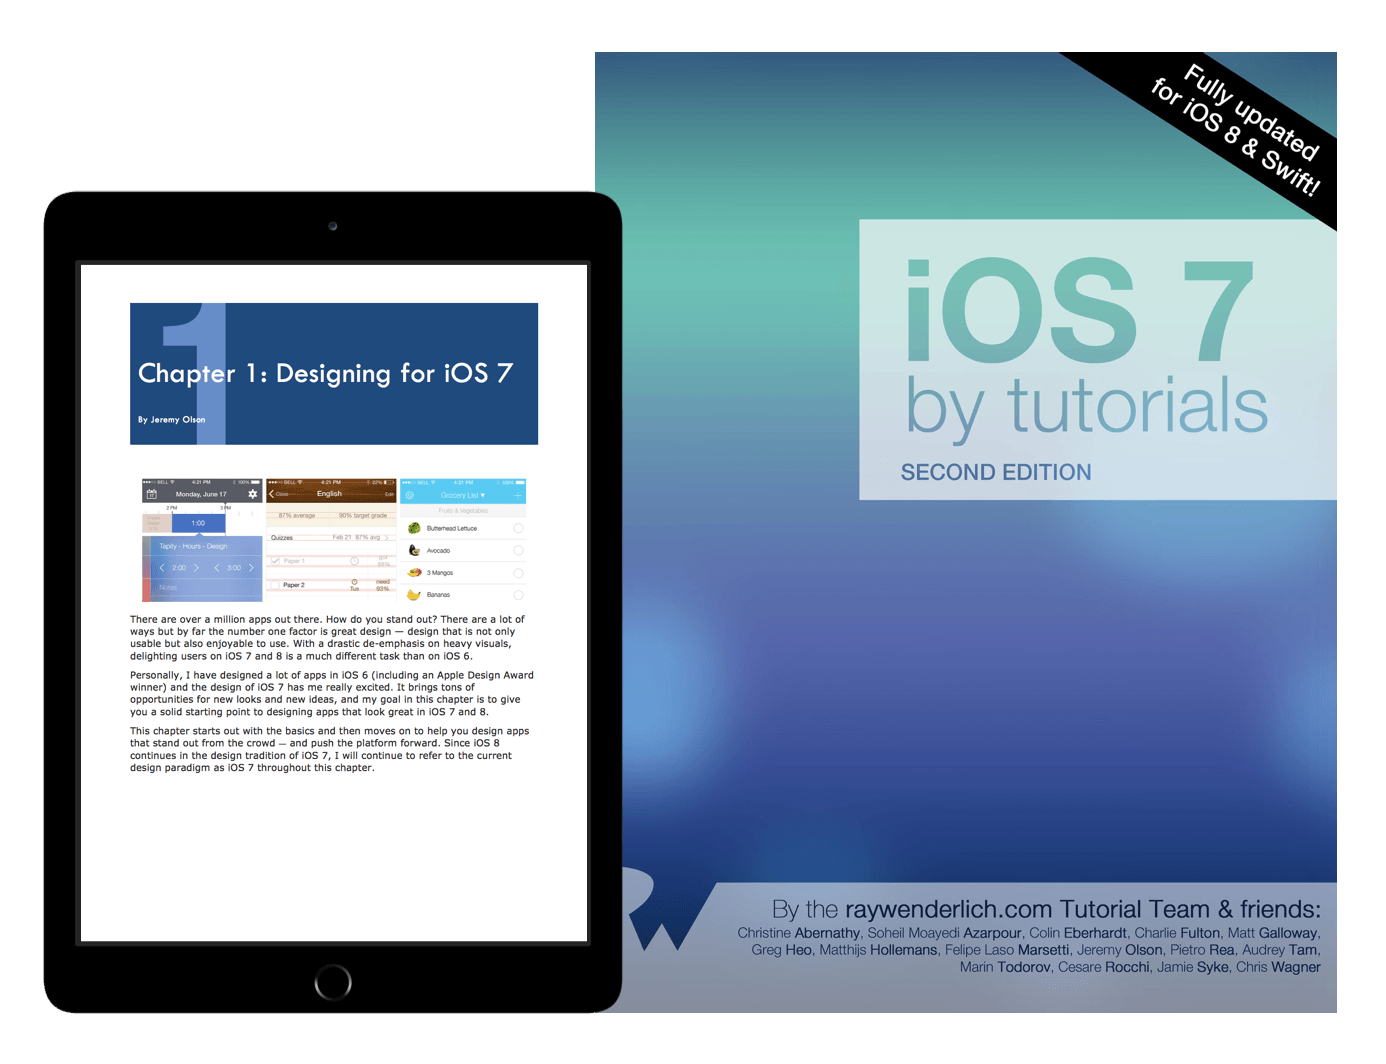 iOS 7 by Tutorials book cover